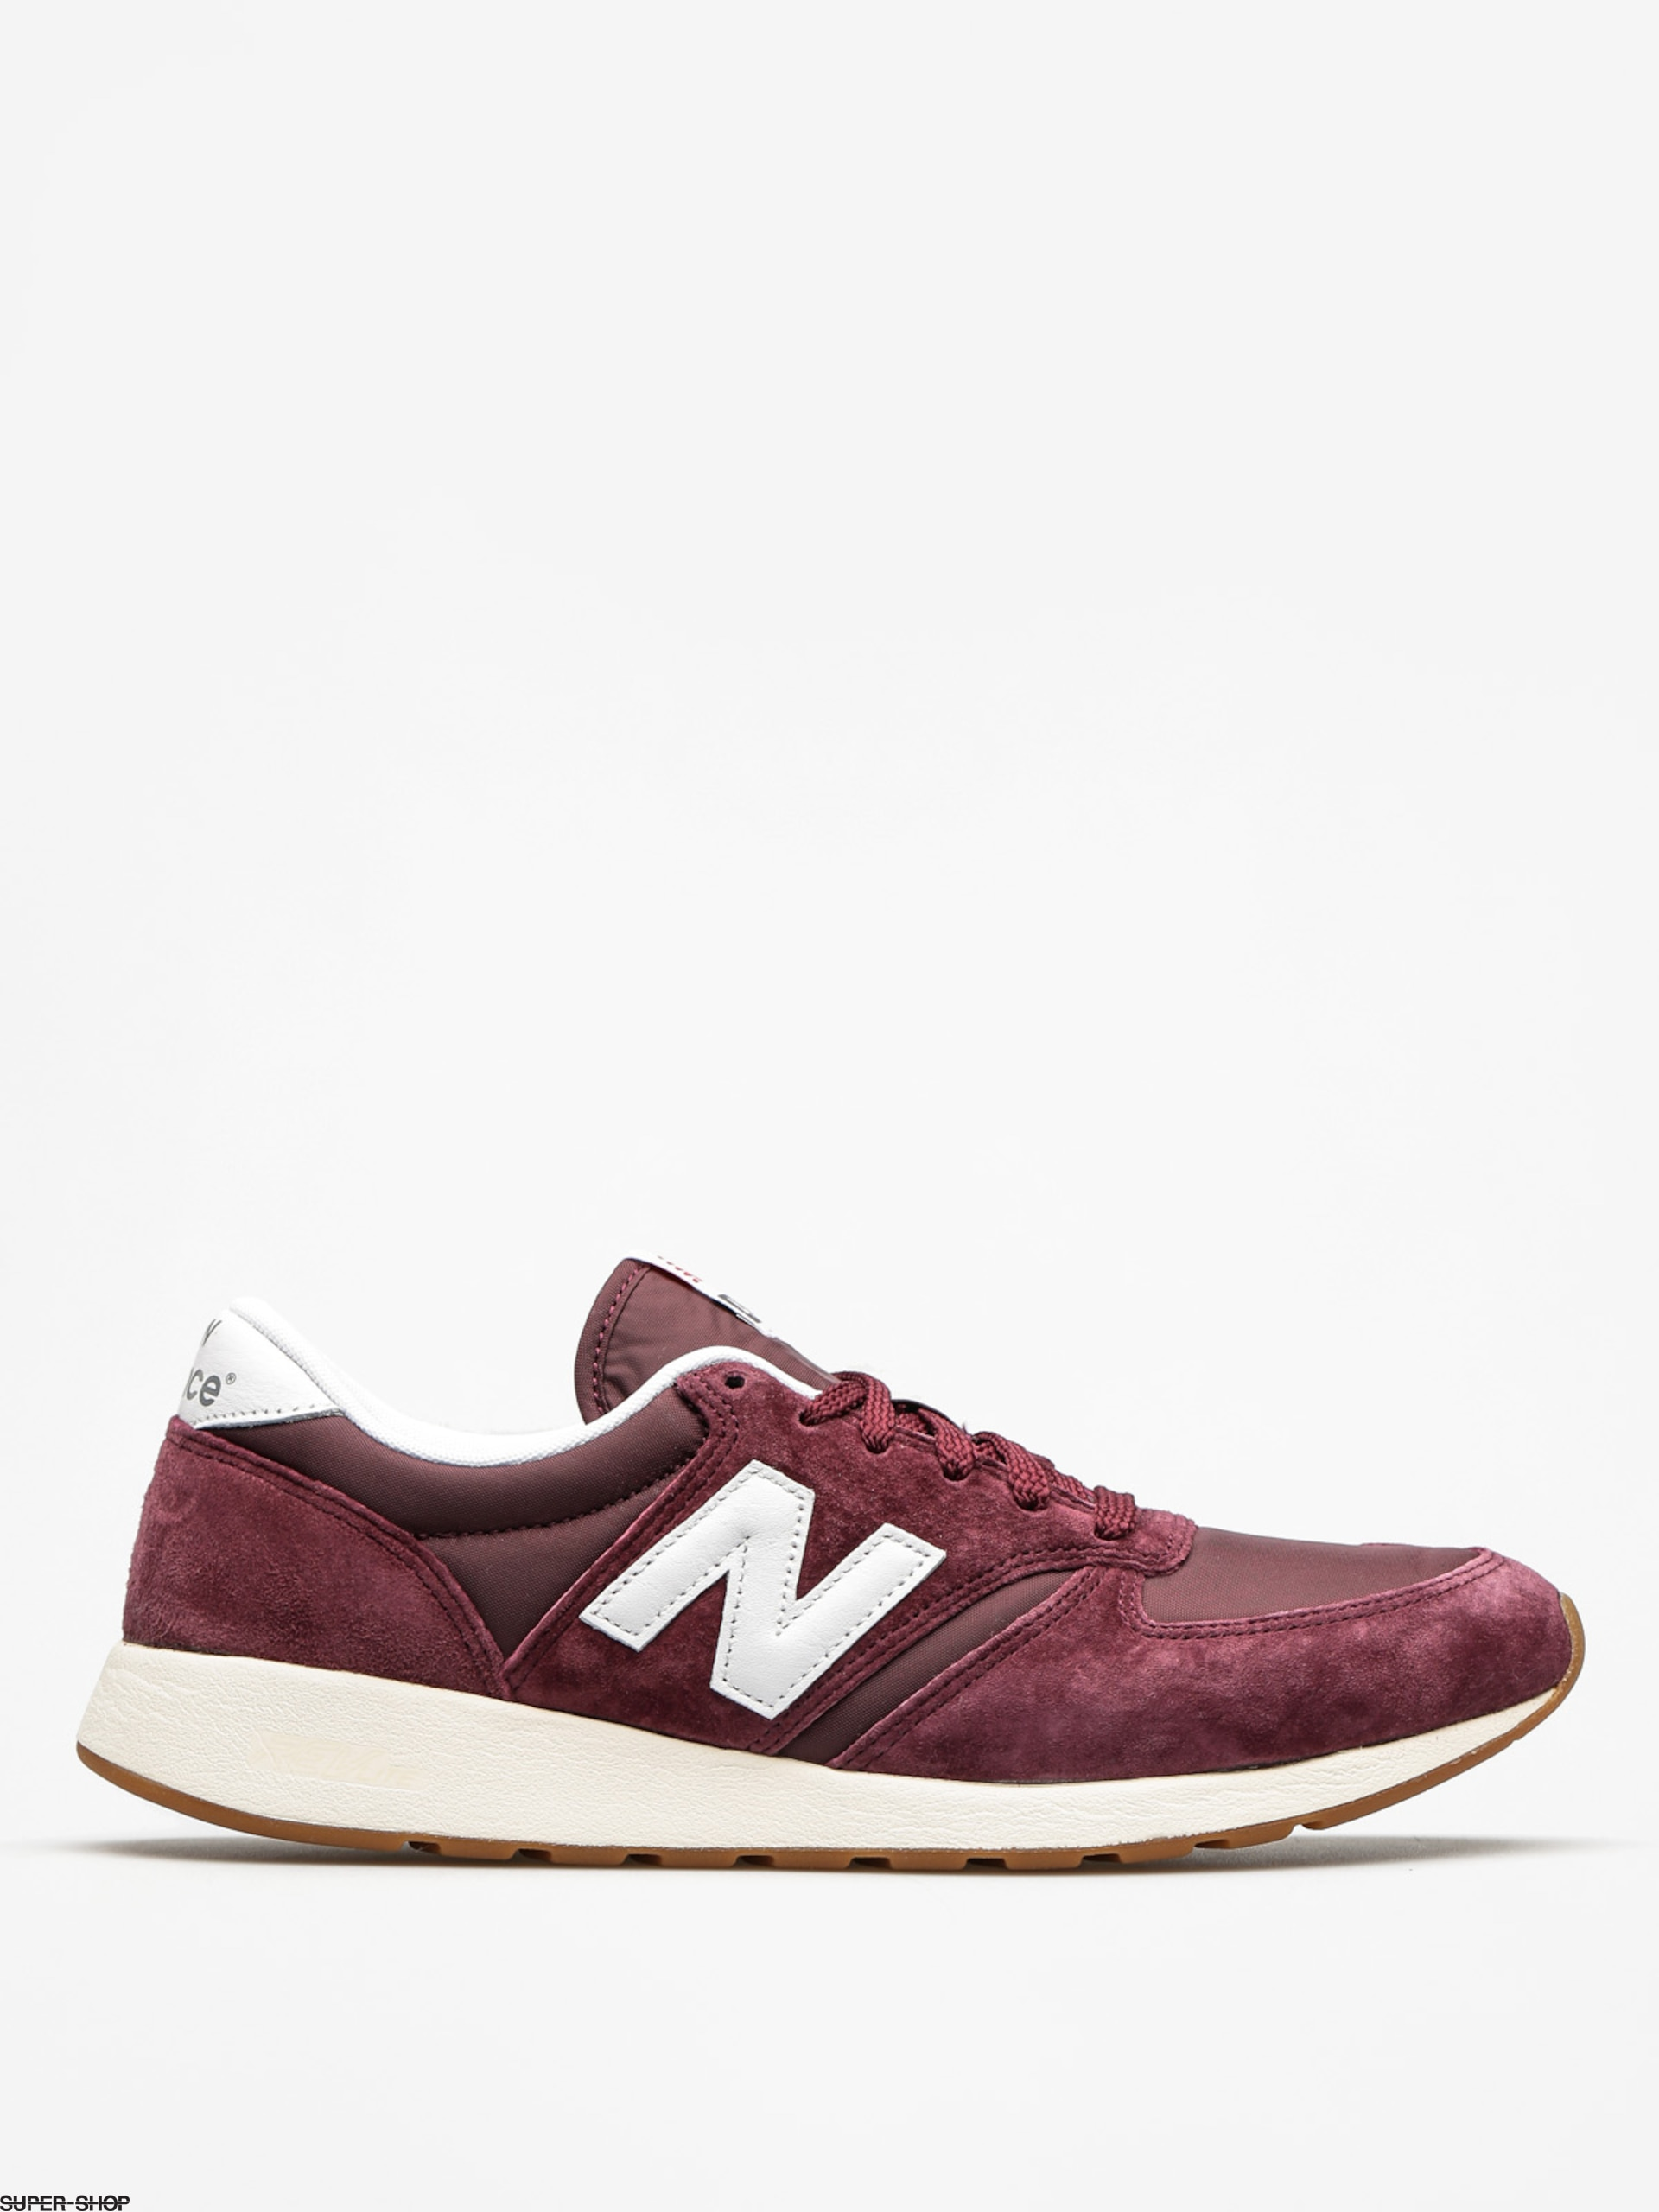 New Balance Shoes 420 (burgundy)